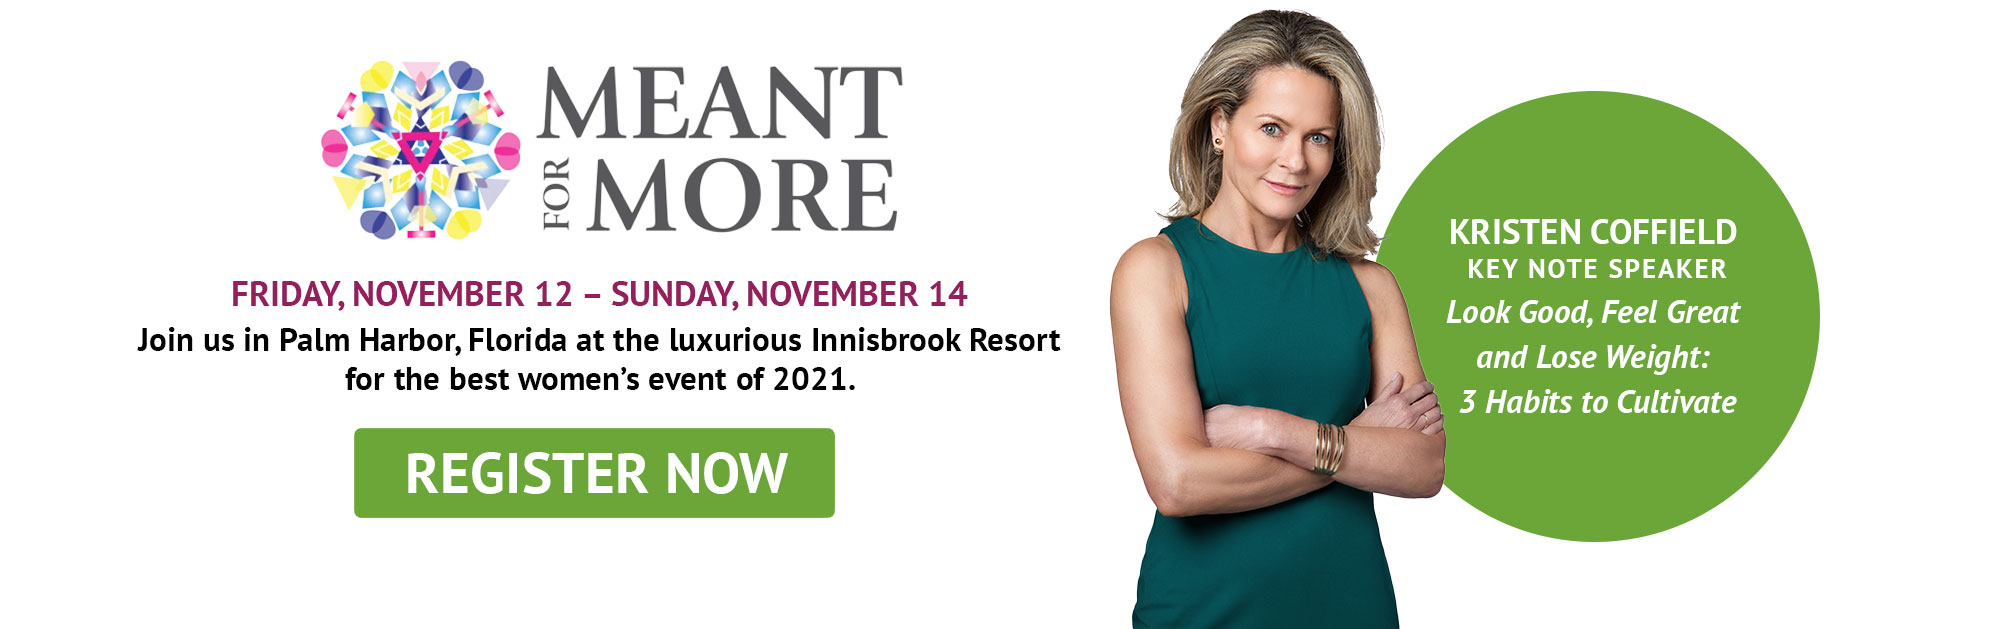 Meant for More Event with Kristen Coffield - Palm Harbor, Florida November 2021